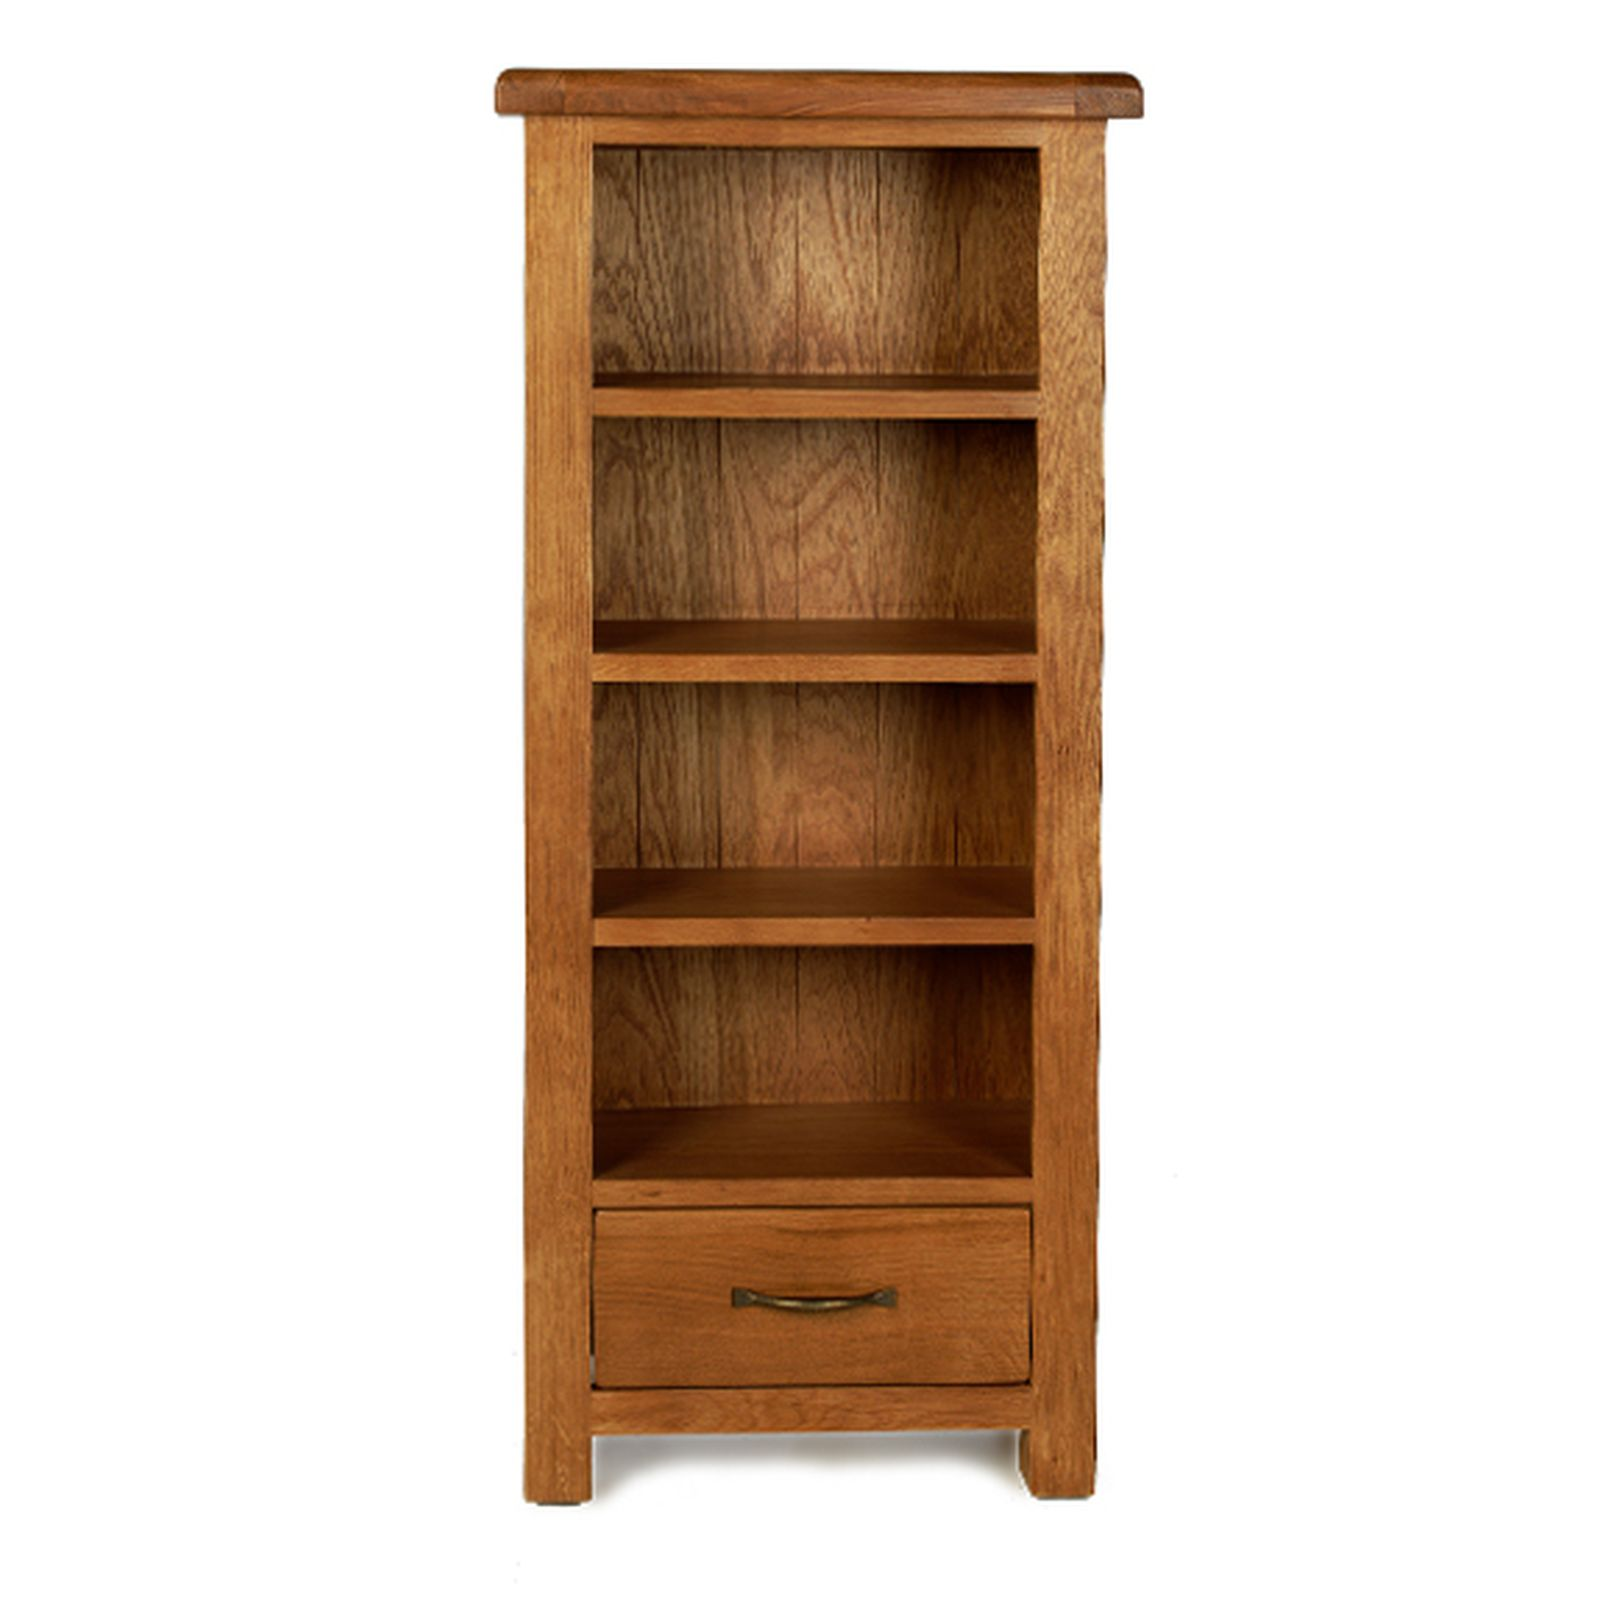 Rushden solid oak furniture CD DVD storage cabinet rack